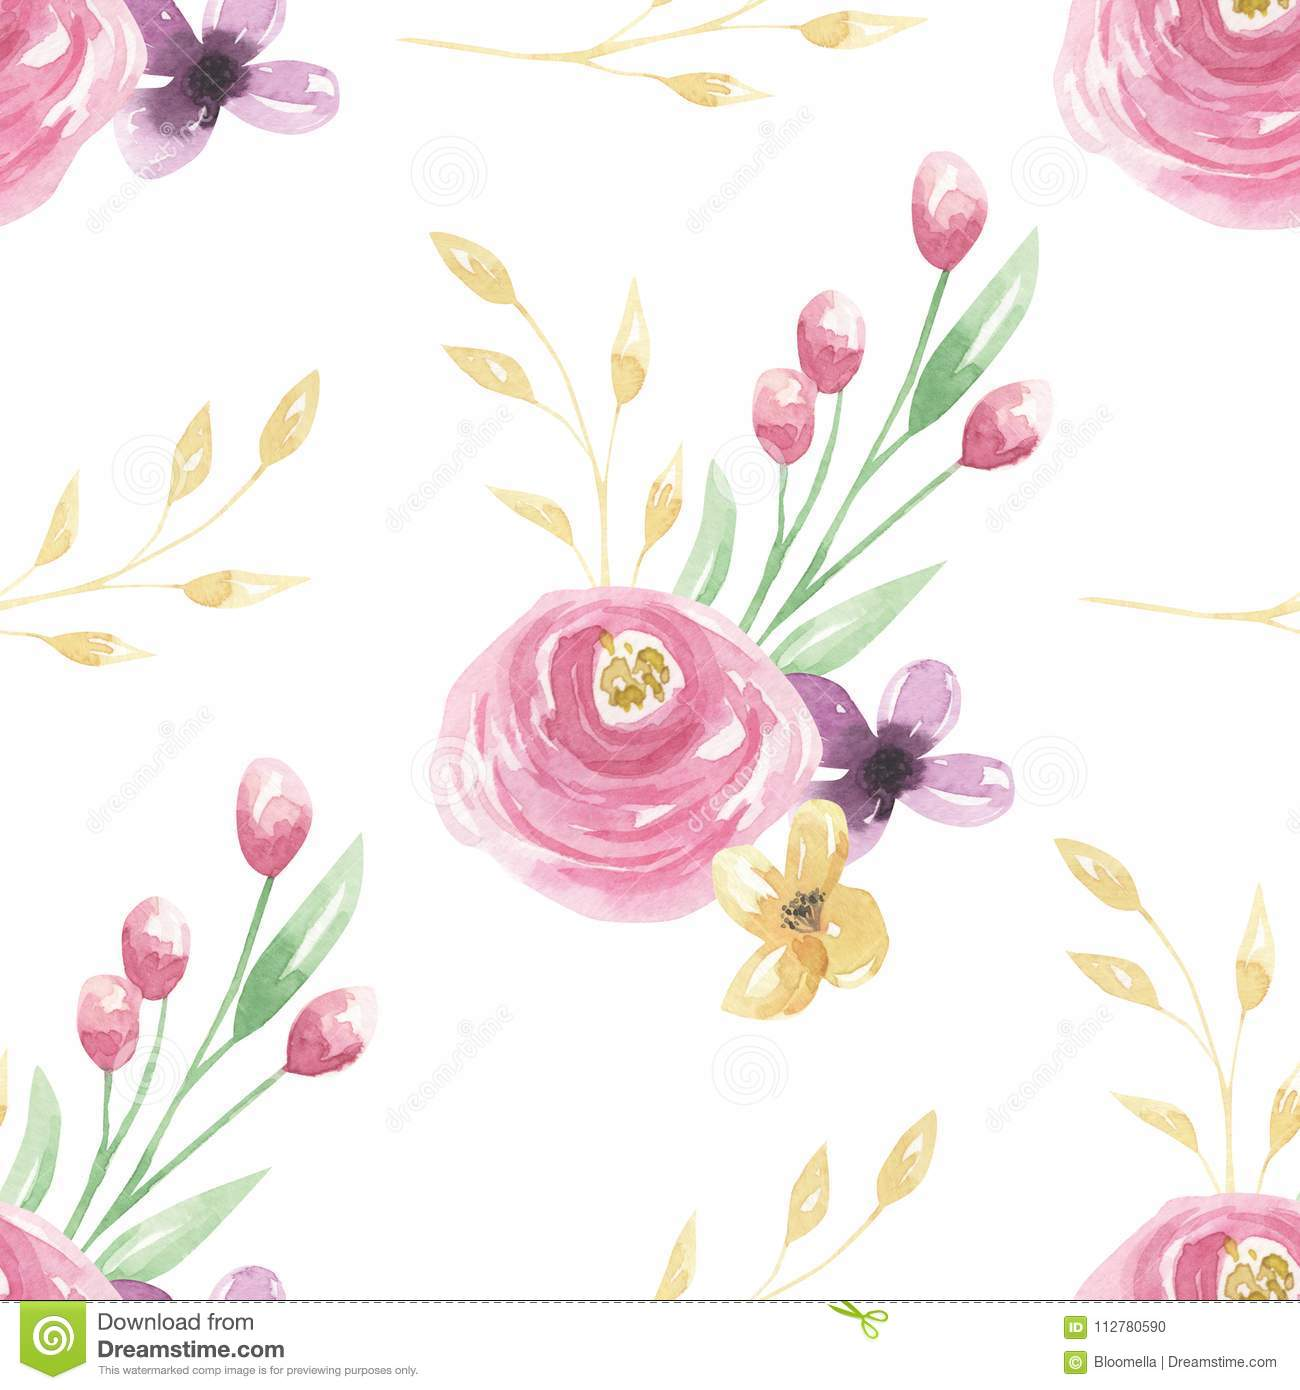 Watercolor Pink Flowers Leaves Berries Green Floral Seamless Patterns Stock Illustration Illustration Of Flowers Frame 112780590